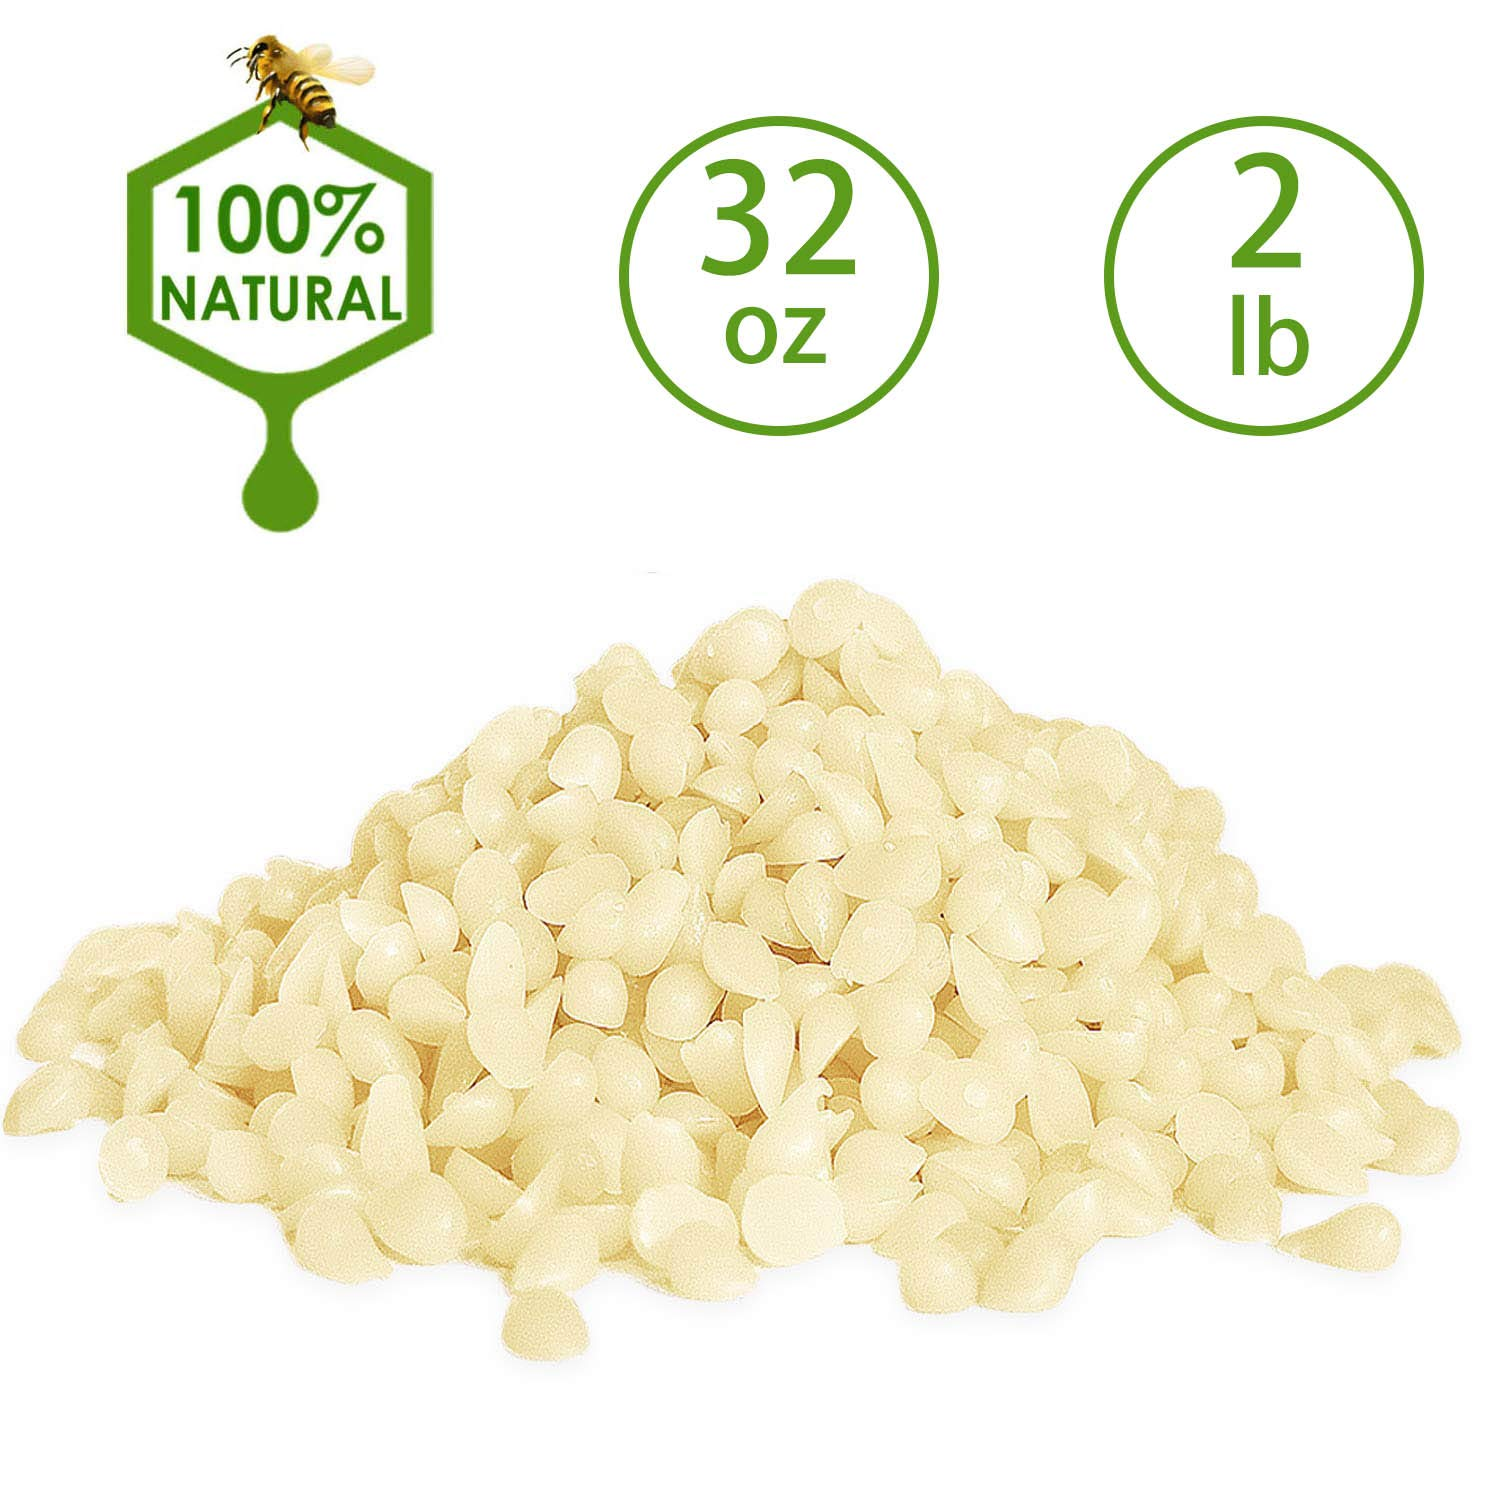 White Beeswax Pellets 2LB/ 32 oz 100% Pure and Natural Triple Filtered for Skin, Face, Body and Hair Care DIY Creams, Lotions, Lip Balm and Soap Making Supplies.